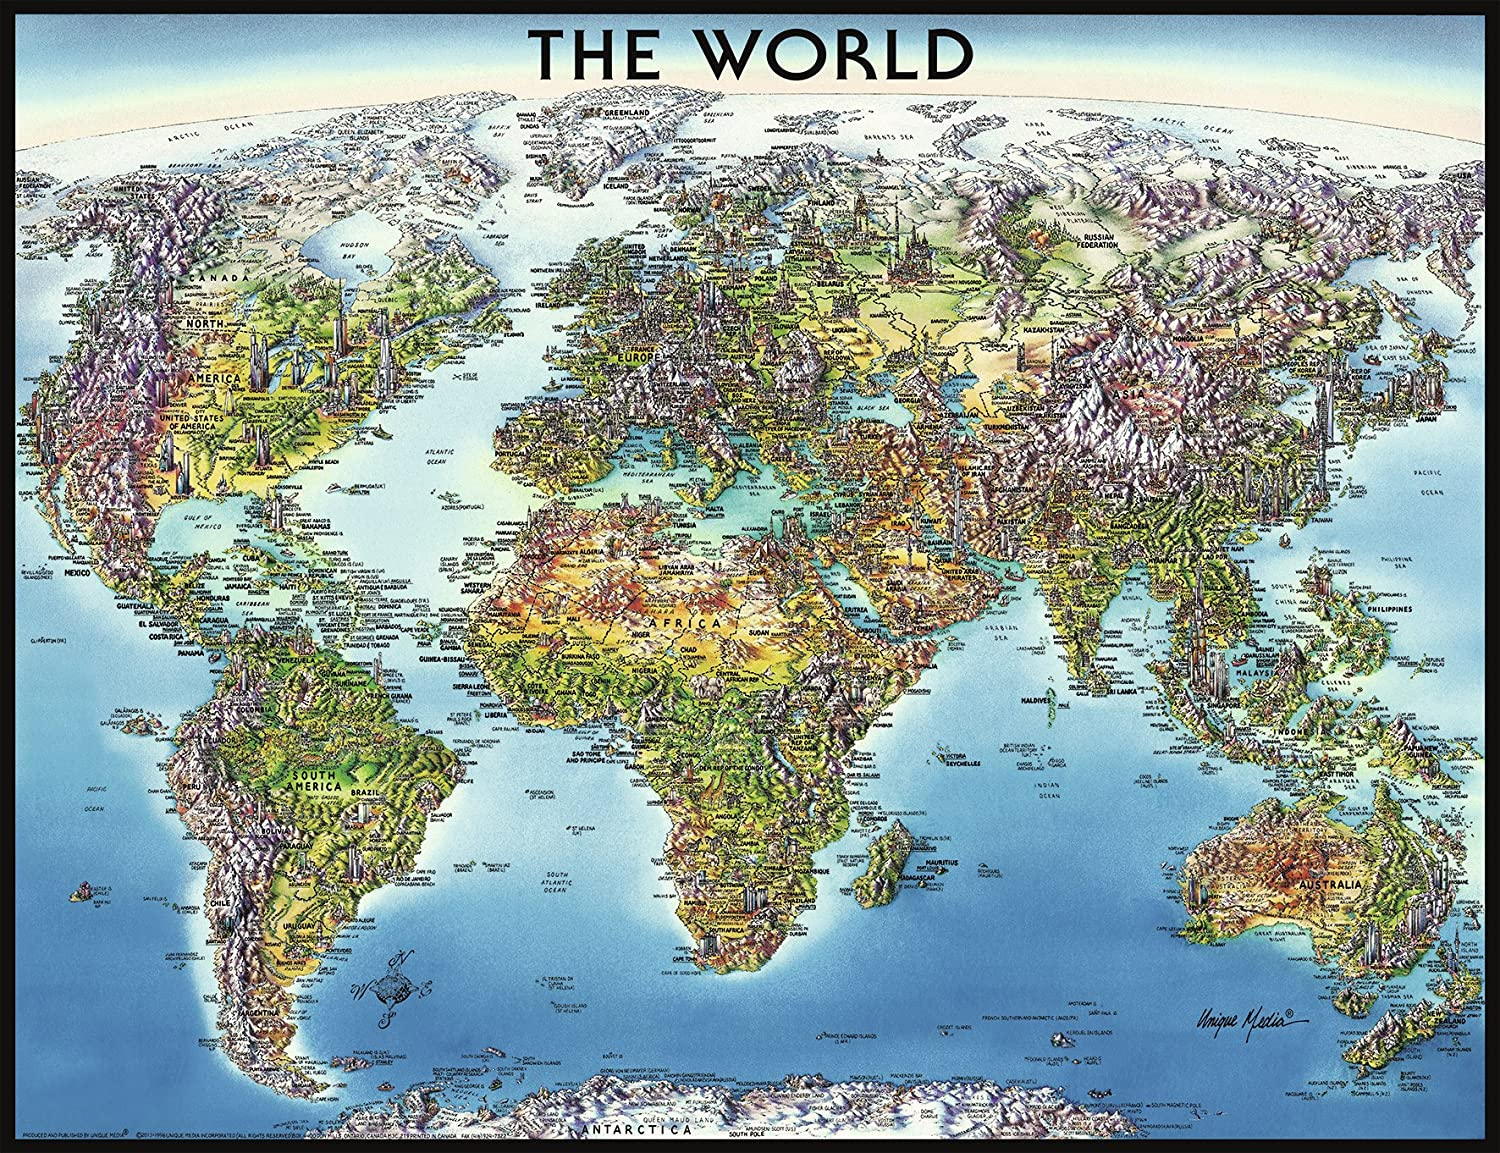 Amazon ravensburger world map jigsaw puzzle 2000 piece amazon ravensburger world map jigsaw puzzle 2000 piece toys games gumiabroncs Images